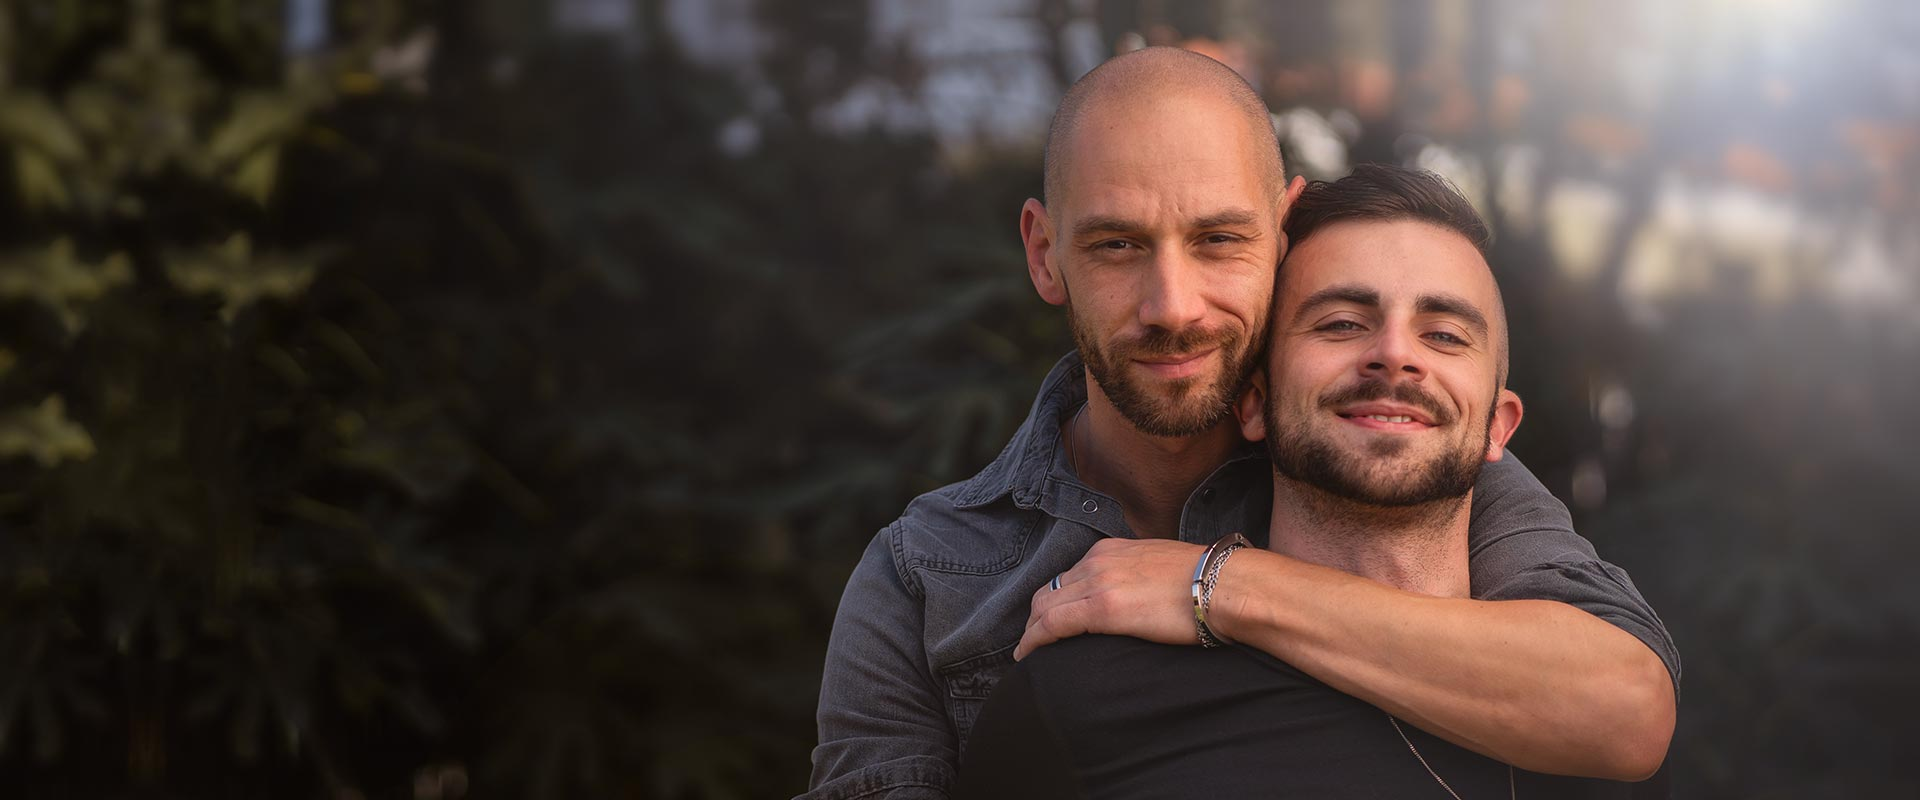 International Gay Dating Sites